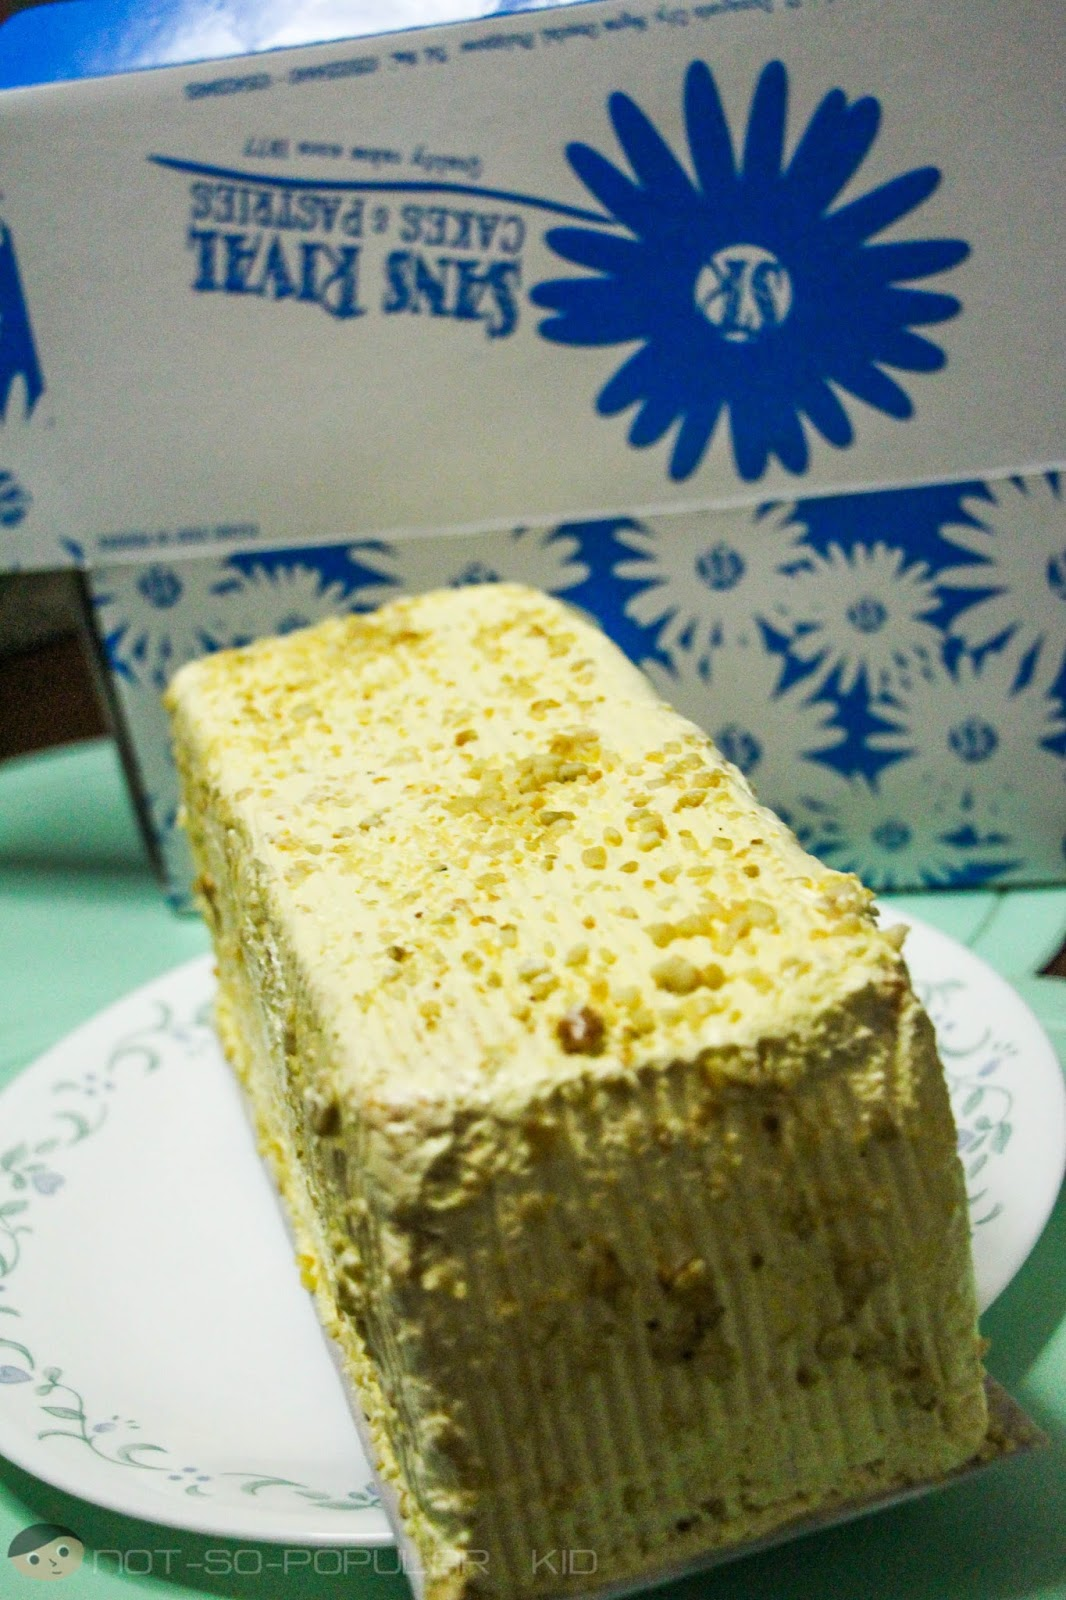 SANS RIVAL Cakes & Pastries of Dumaguete | A Not-So-Popular Kid